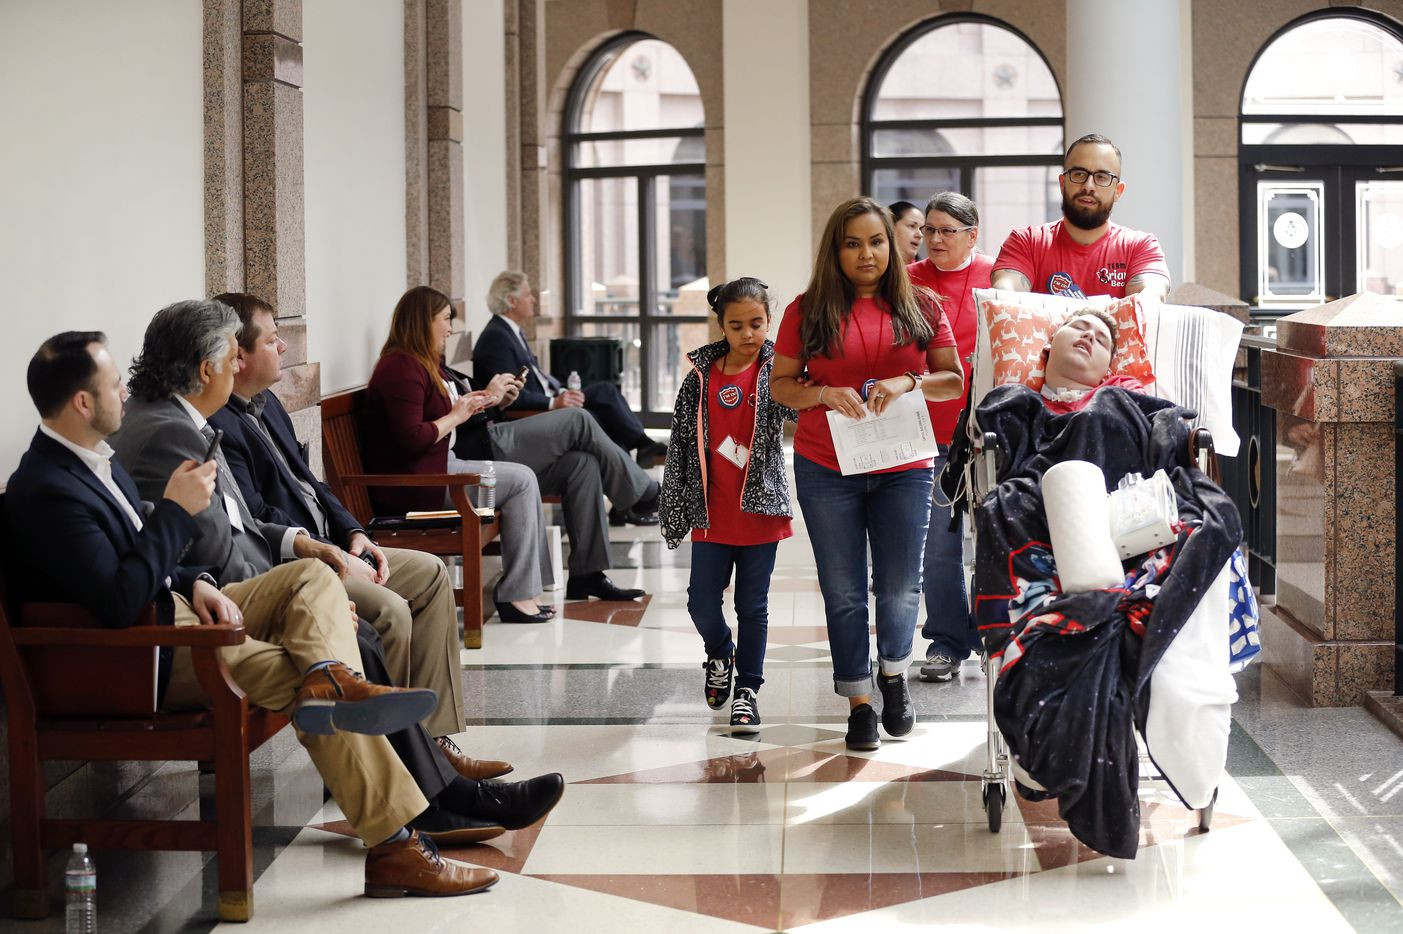 Gabriella McCann of Bulverde, Texas (center) and her medically fragile son, Briar, 15, (being pushed by his LVN Gregory Flores) head to a visit with State Senator Peter Flores, R-District 19.